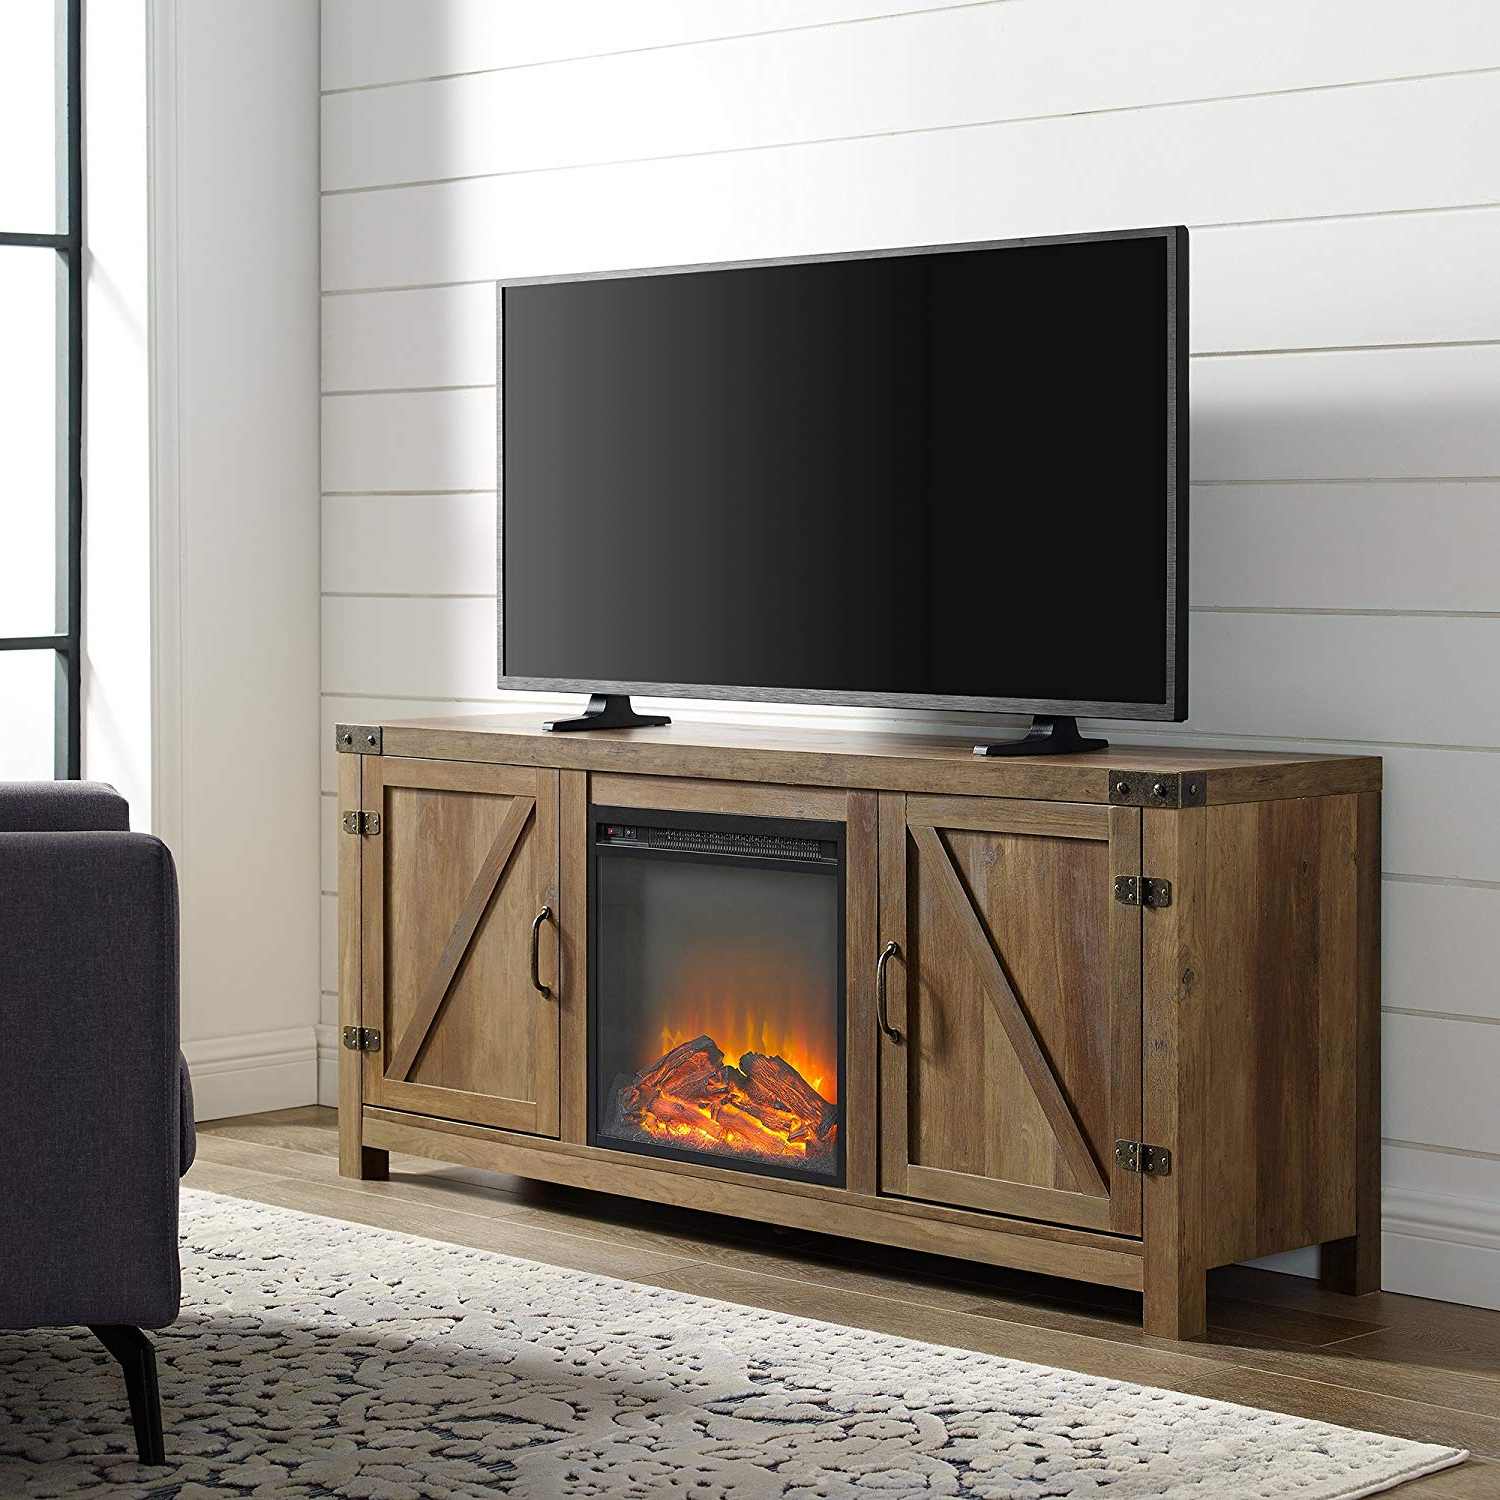 Well Liked Amazon: Home Accent Furnishings New 58 Inch Barn Door Fireplace For Kilian Grey 49 Inch Tv Stands (View 3 of 20)